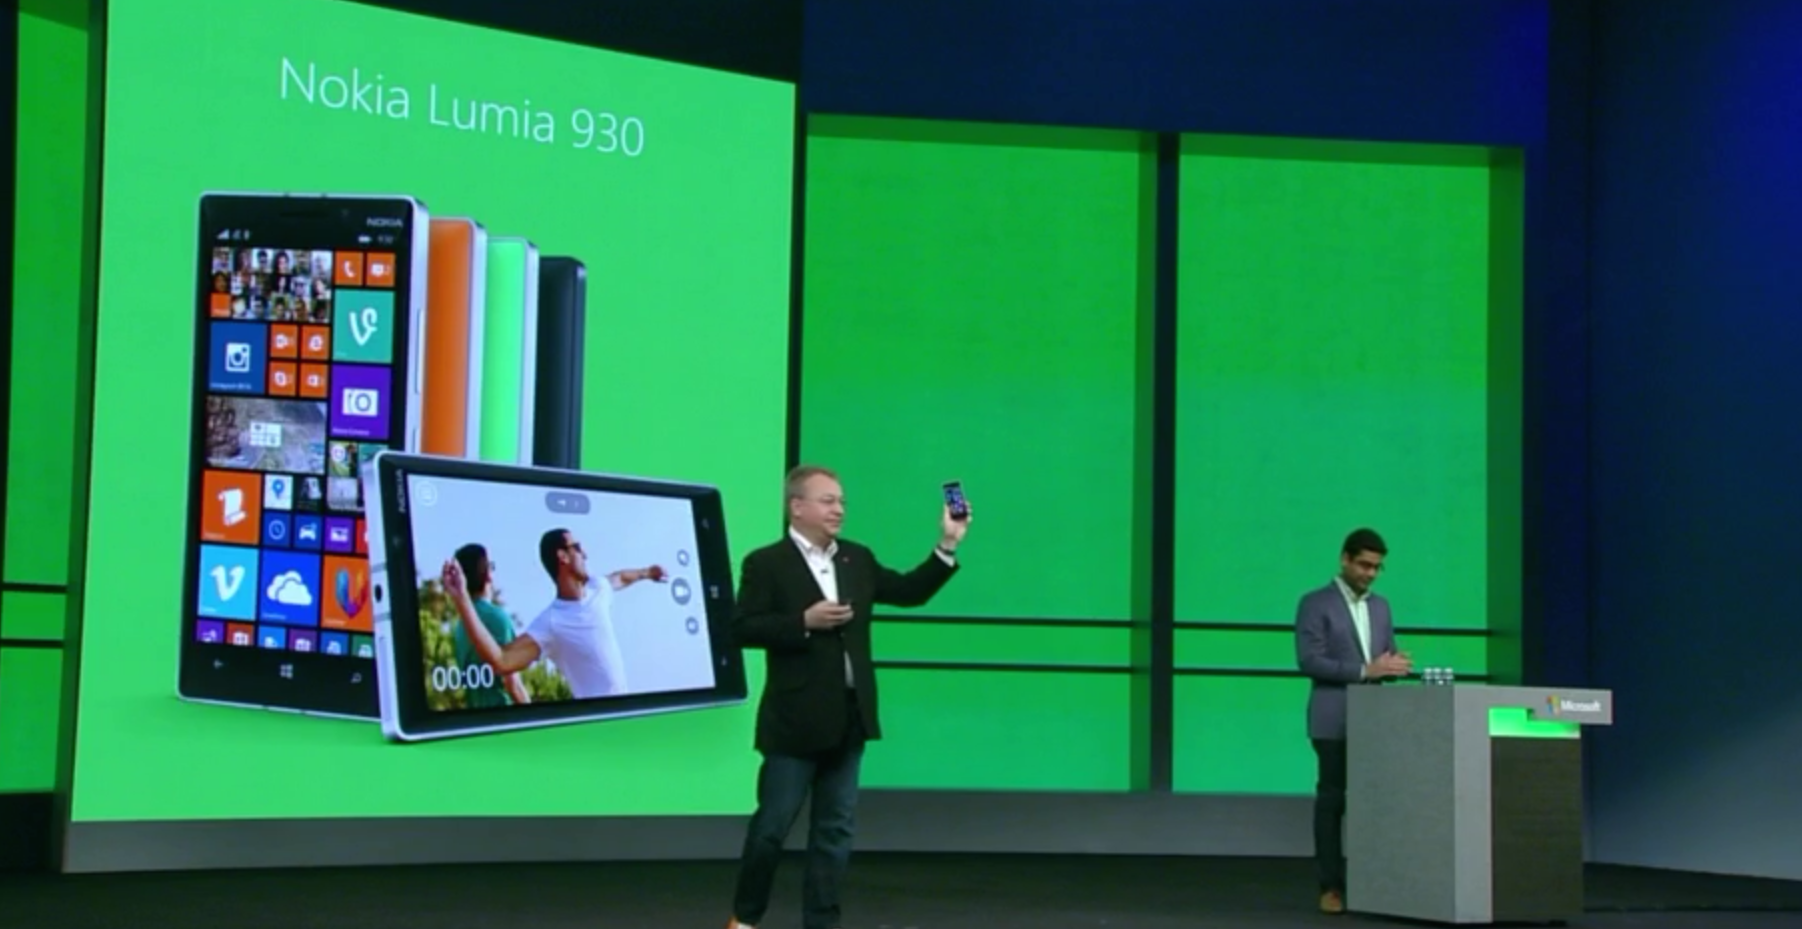 Nokia announces the $599 Lumia 930 smartphone: 5-inch display, wireless charging and 20MP camera